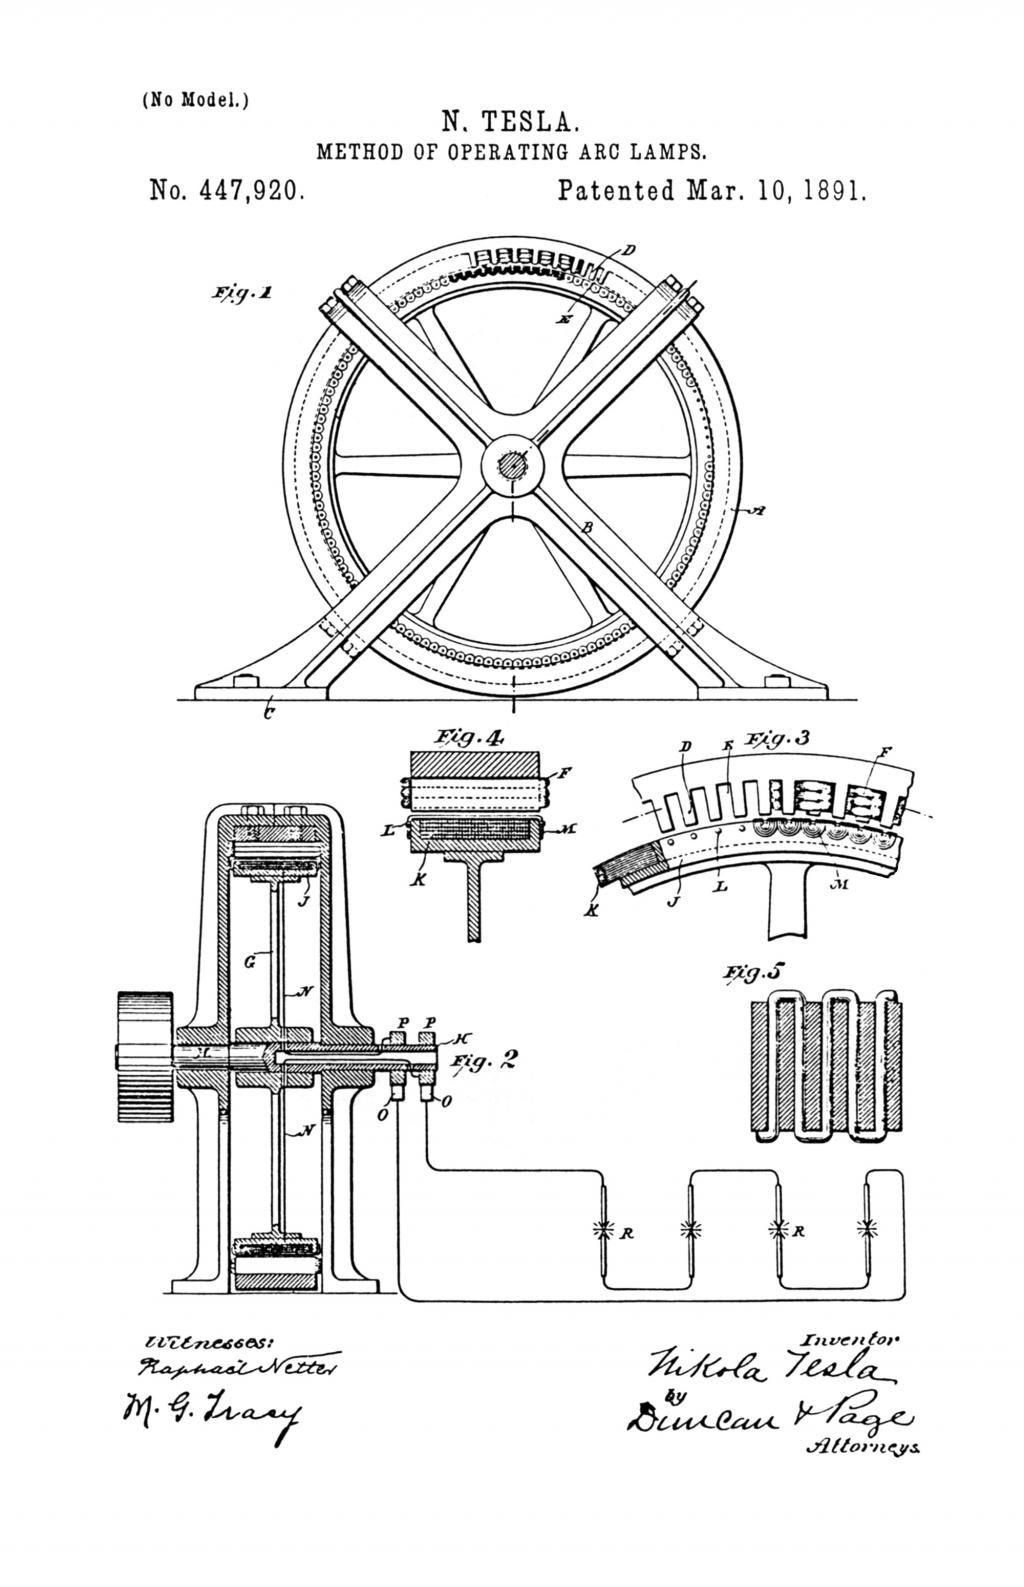 Nikola Tesla U.S. Patent 447,920 - Method of Operating Arc-Lamps - Image 1